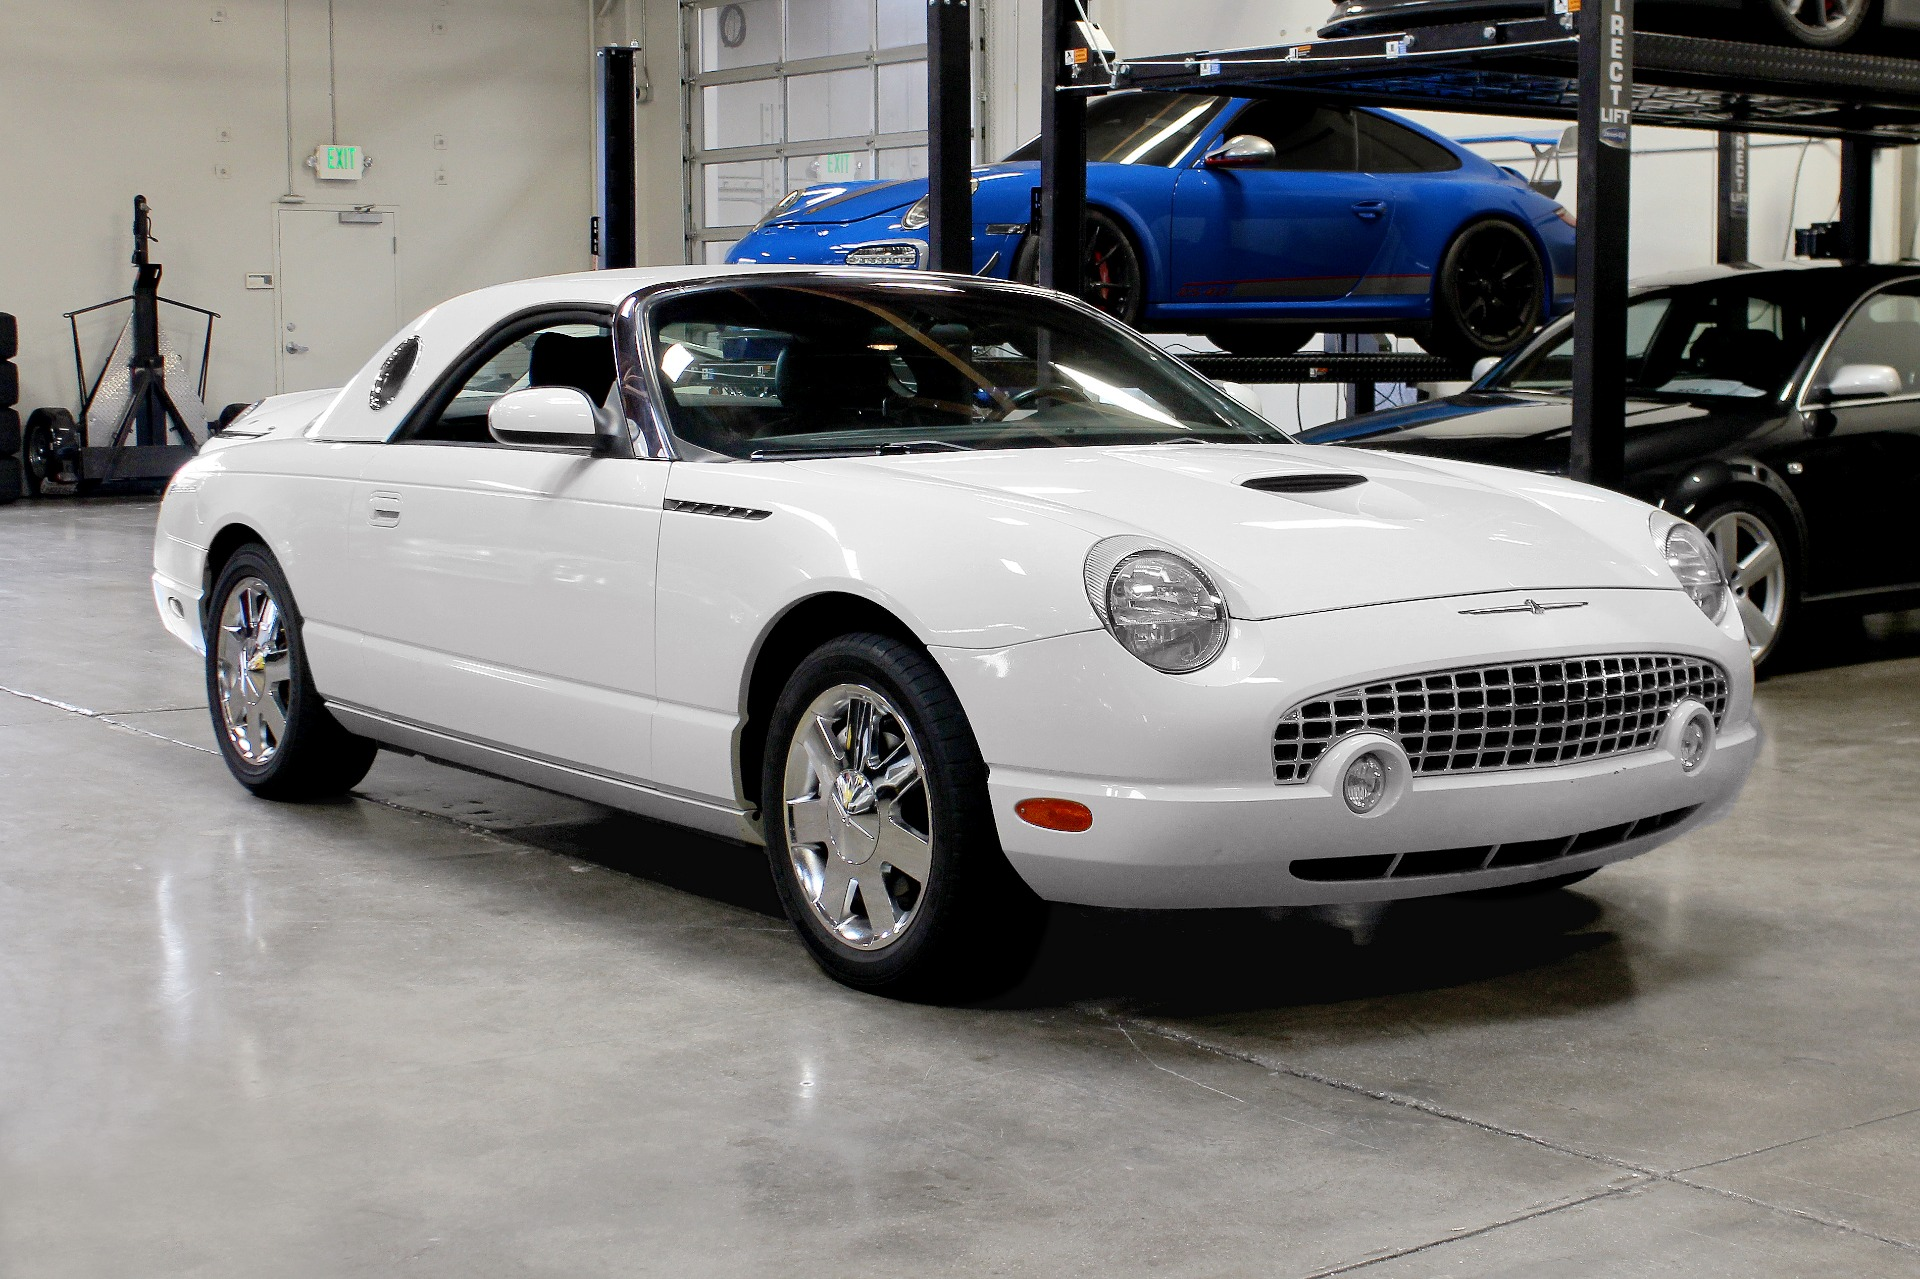 Used 2002 Ford Thunderbird Deluxe for sale $13,995 at San Francisco Sports Cars in San Carlos CA 94070 1